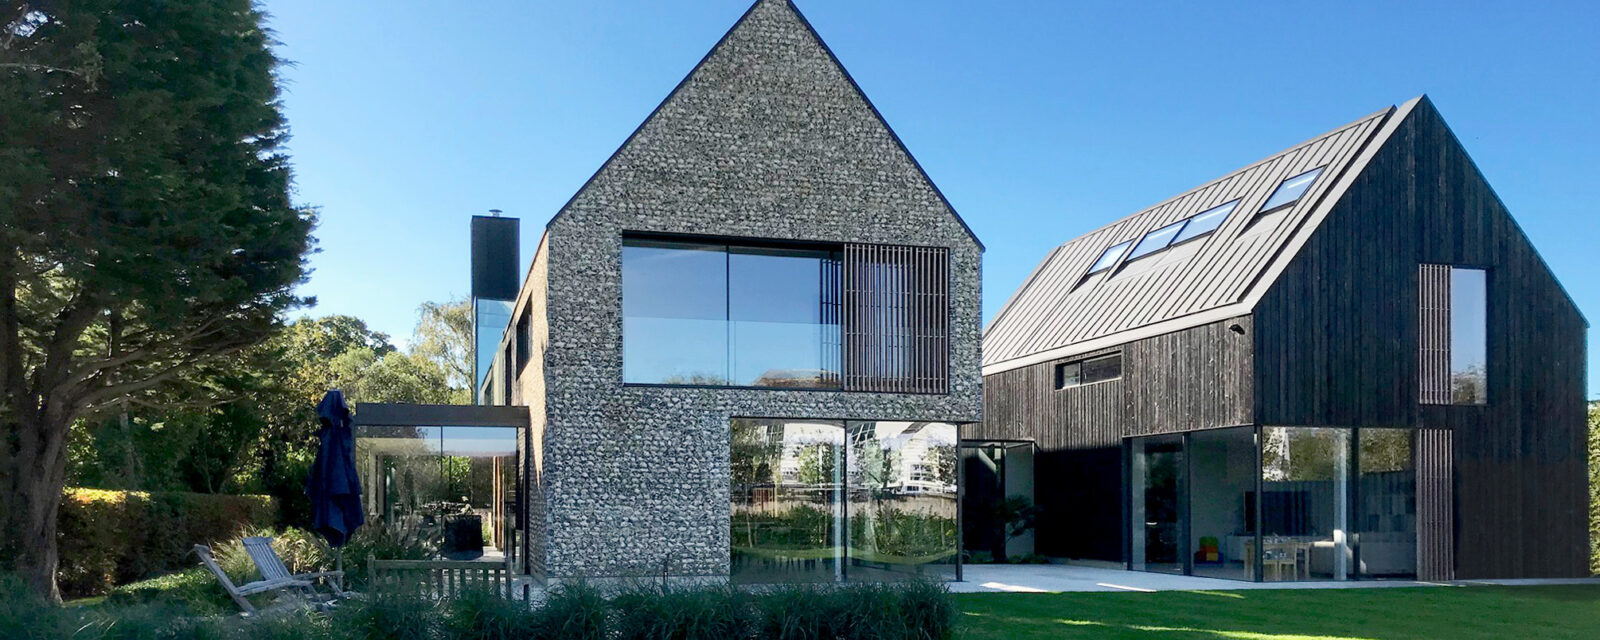 Garden view of private dwelling in Chichester